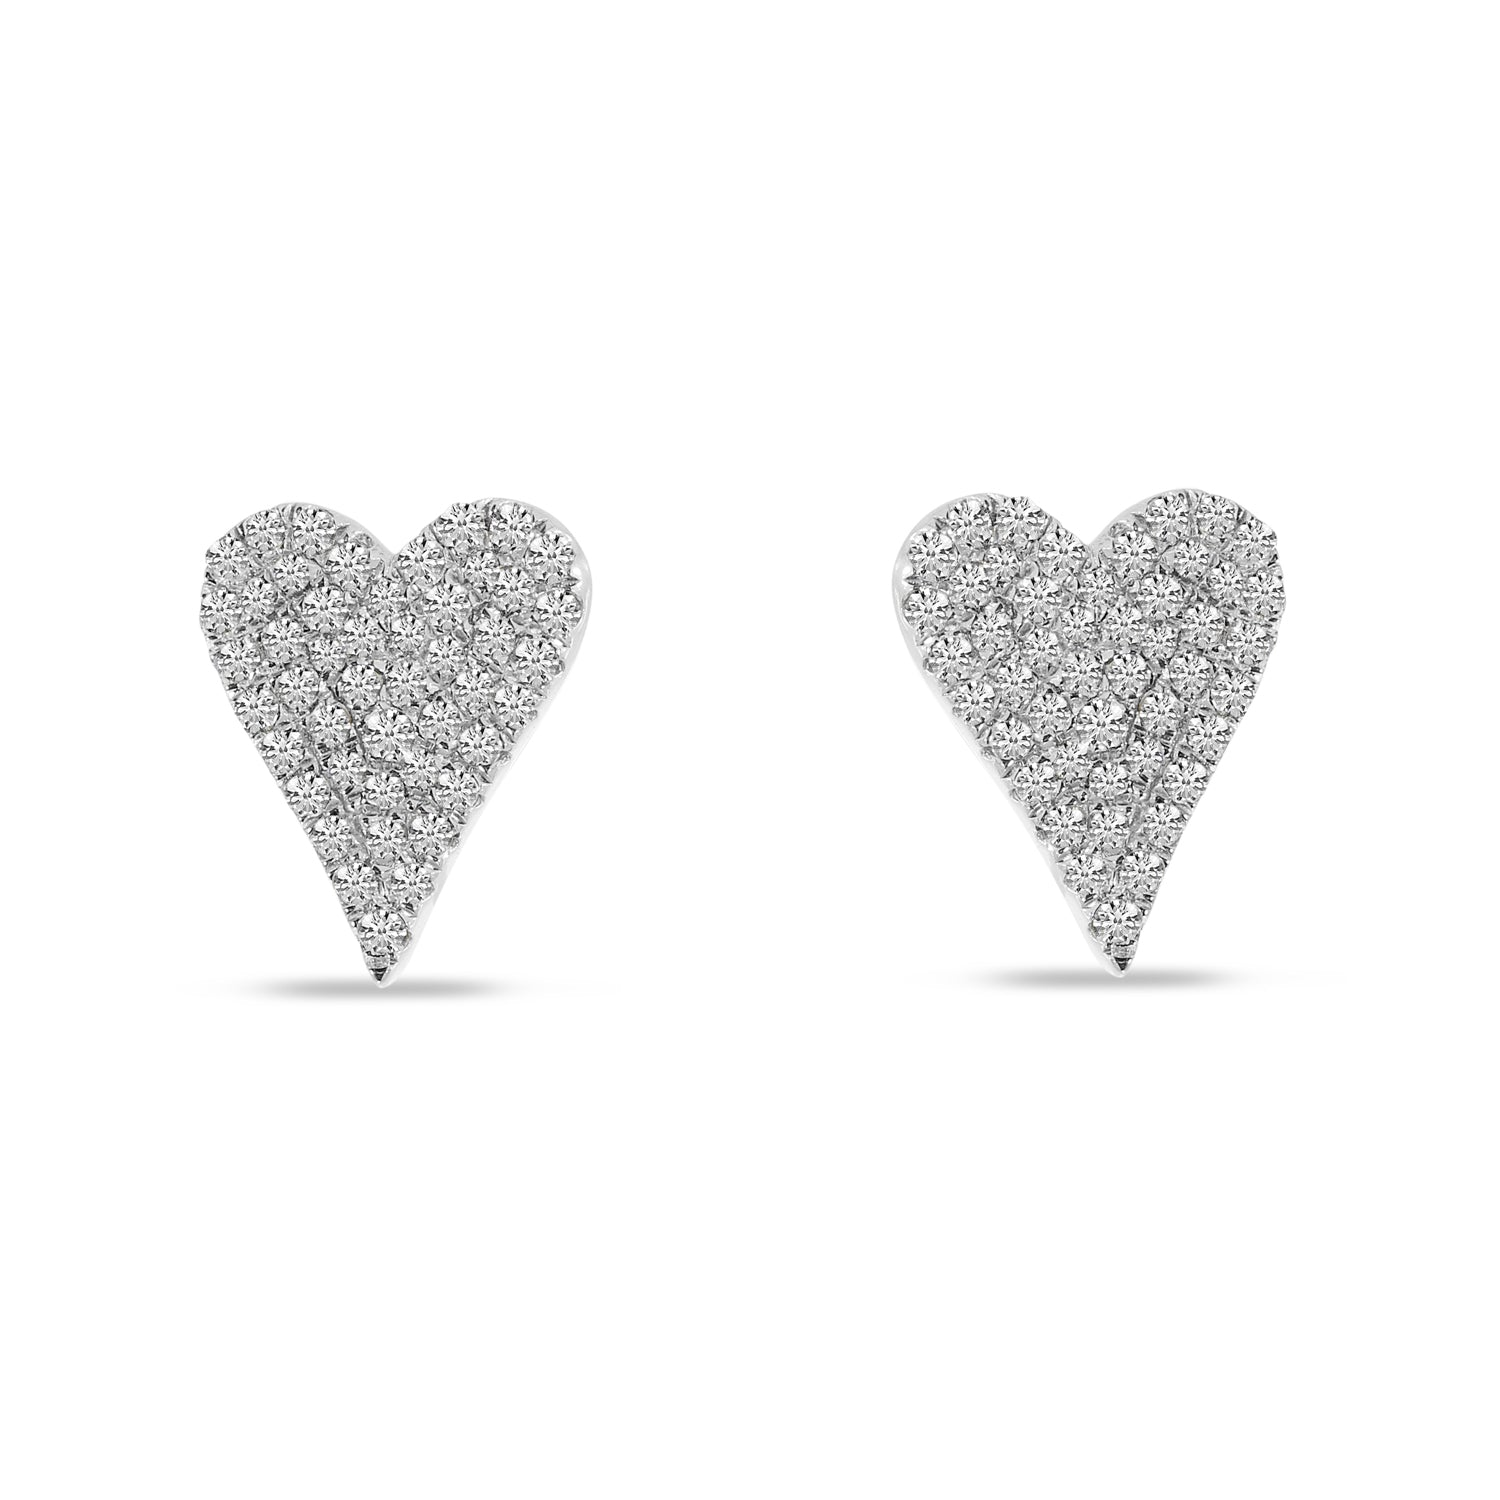 14K White Gold Small Pave 0.28ct. Diamond Heart Earrings